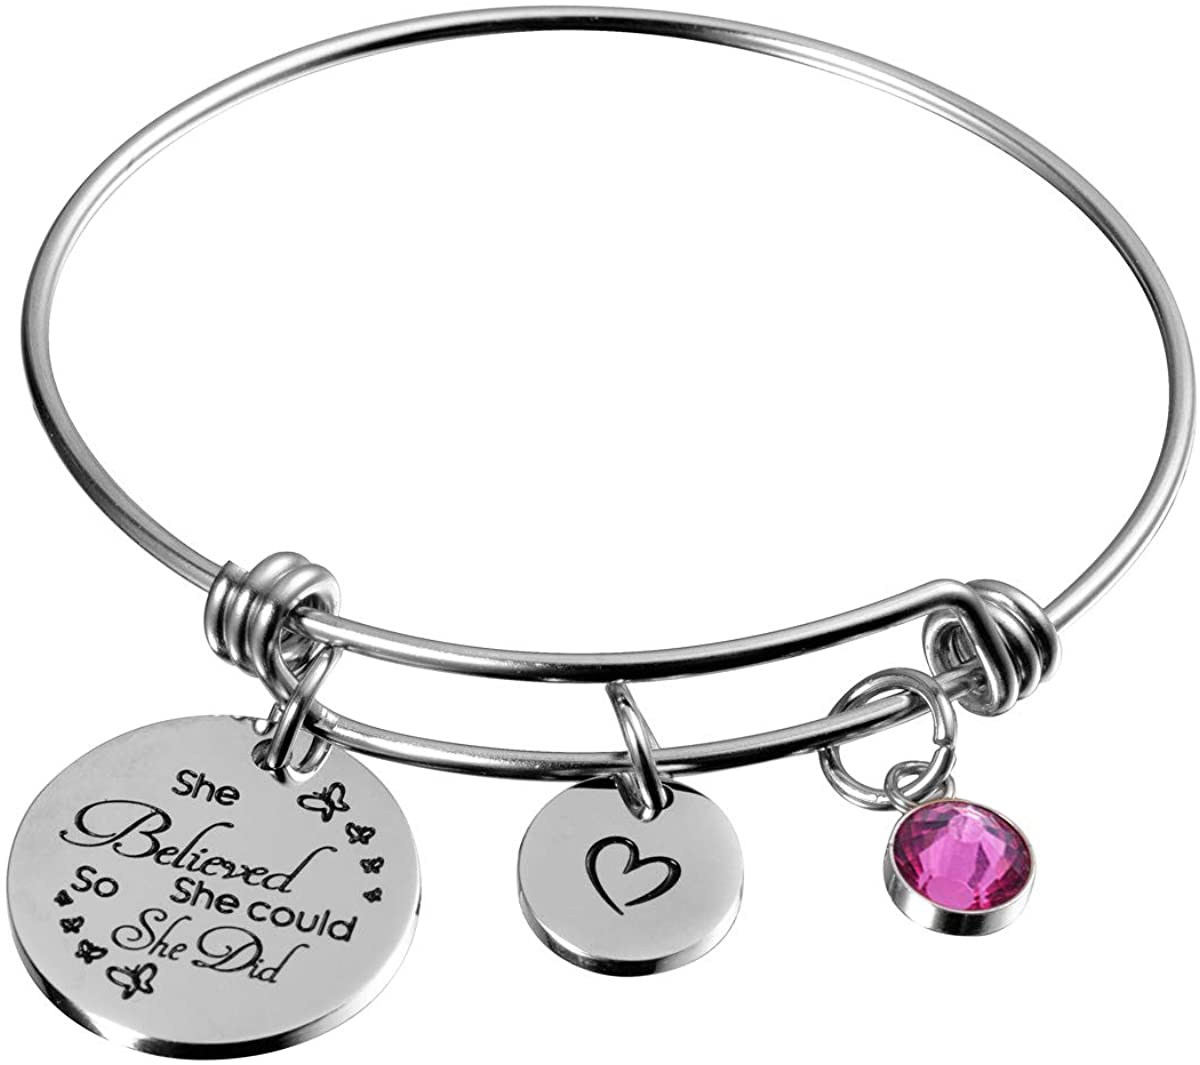 Raysunfook Birthstone Inspirational Gifts She Believed She Could So She Did Heart Charm Bracelets for Girls